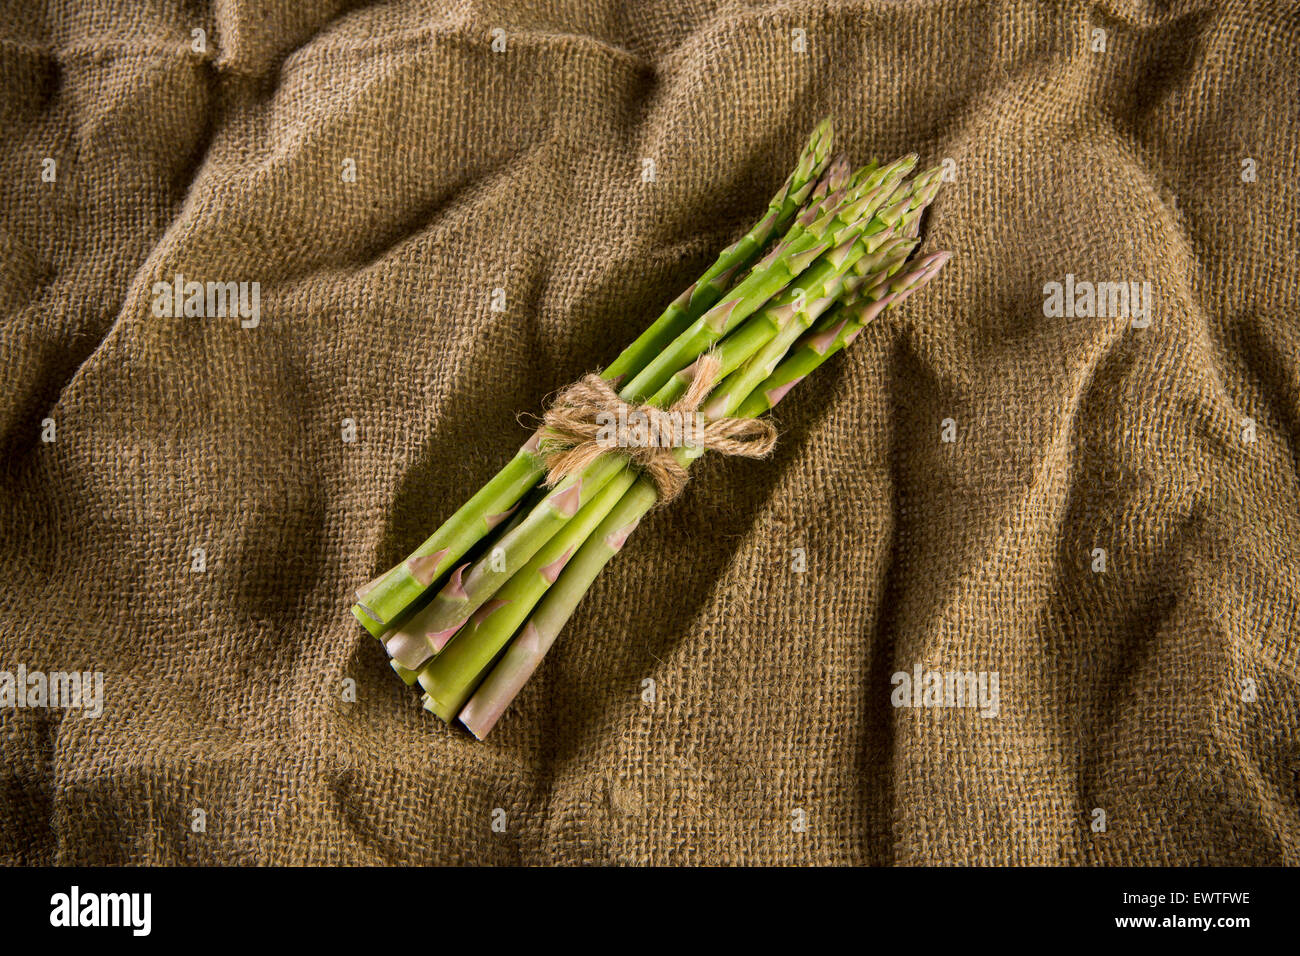 A bunch of Asparagus on sackcloth. - Stock Image